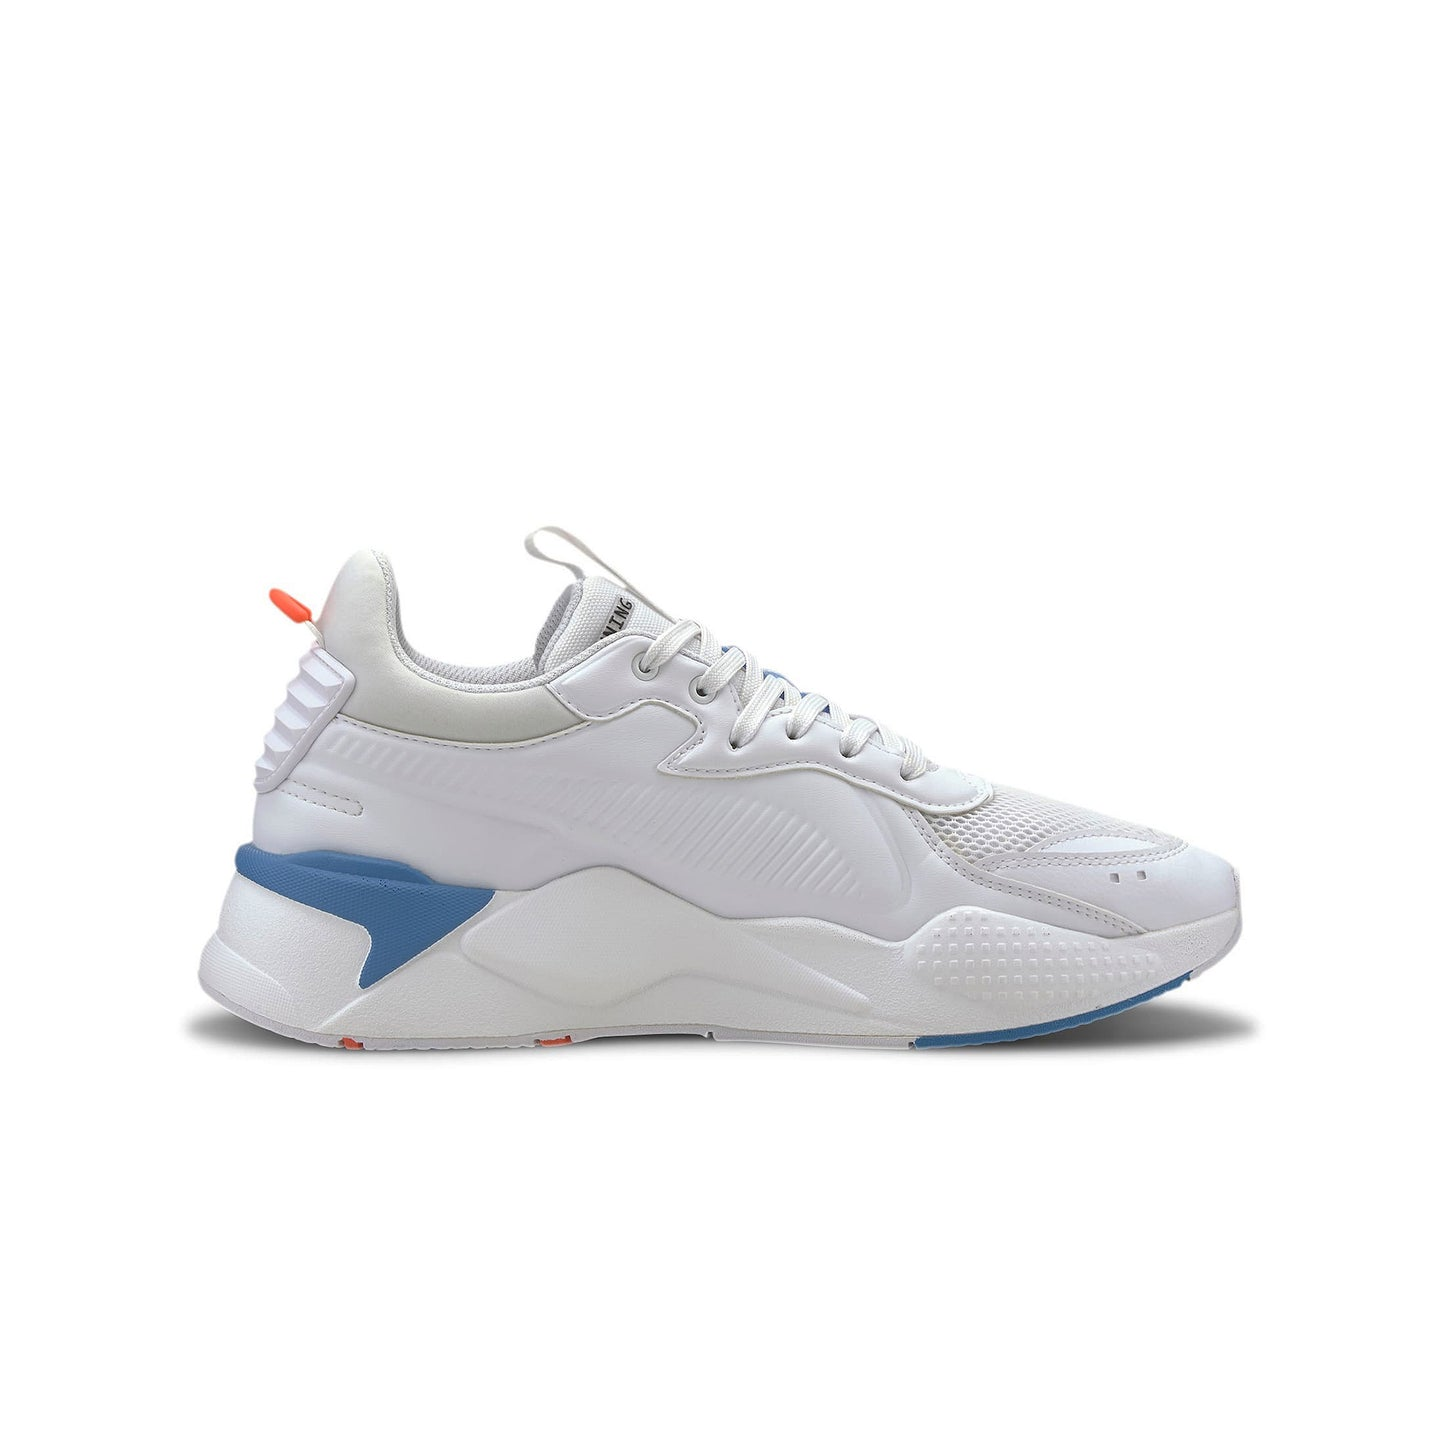 Giày Thể Thao Unisex Puma Rs-X Master